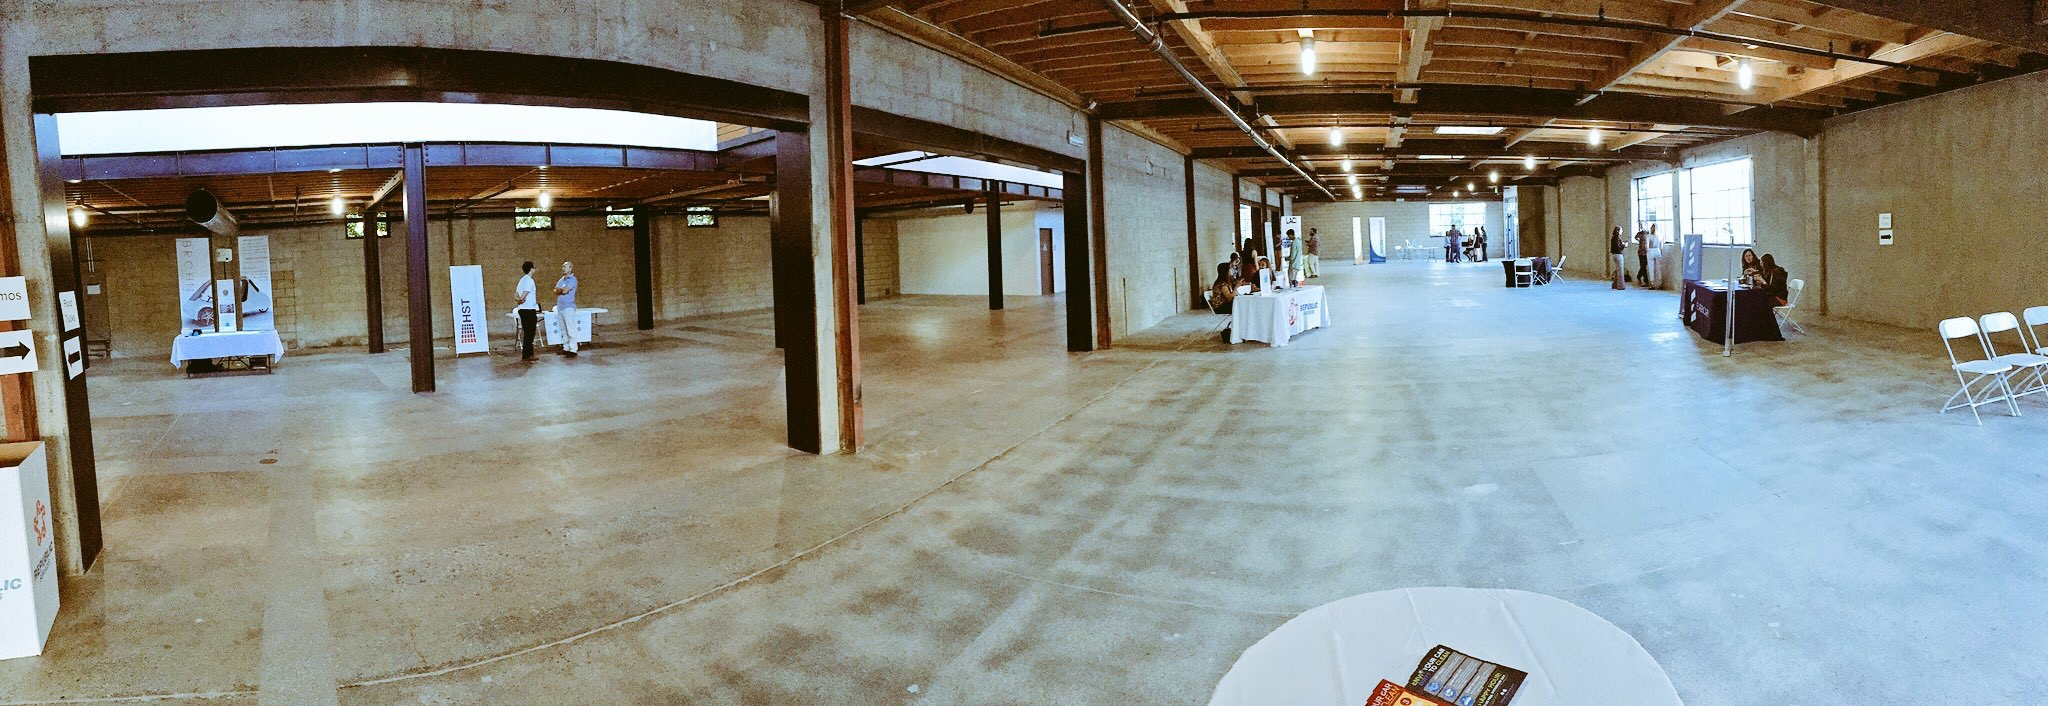 First floor of the awesome blAckwelder venue. The calm before the storm.